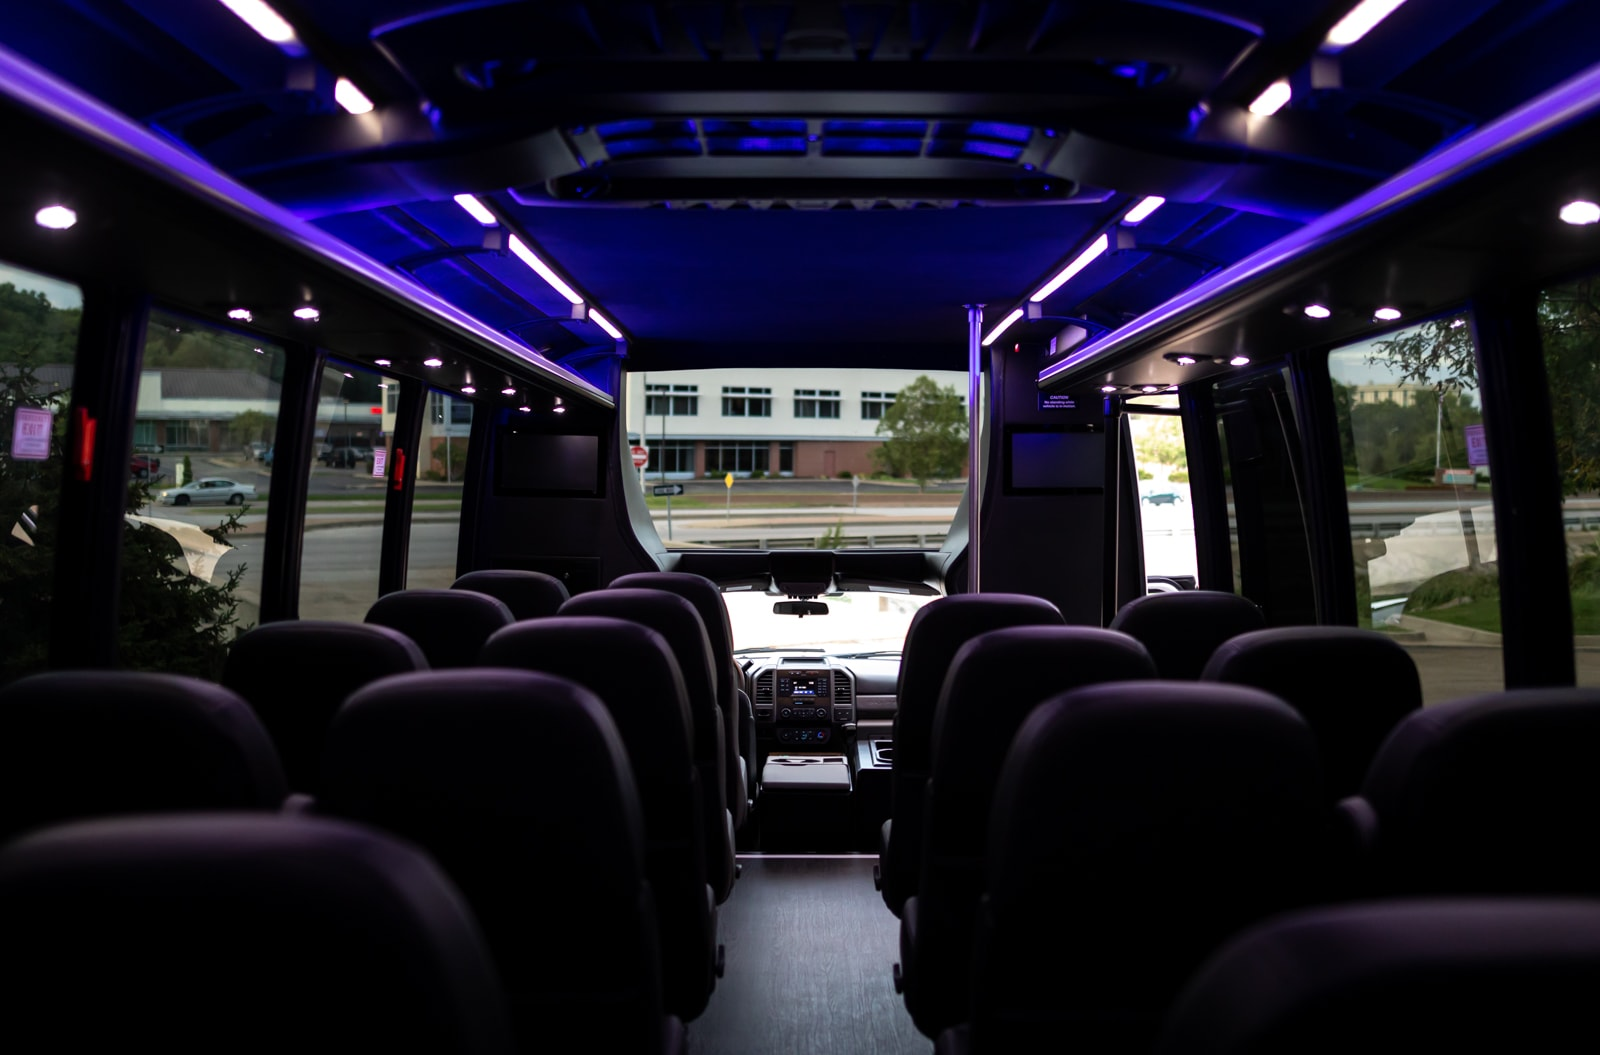 Custom front window and seating for a large group or event in the Grech Mini Coach.